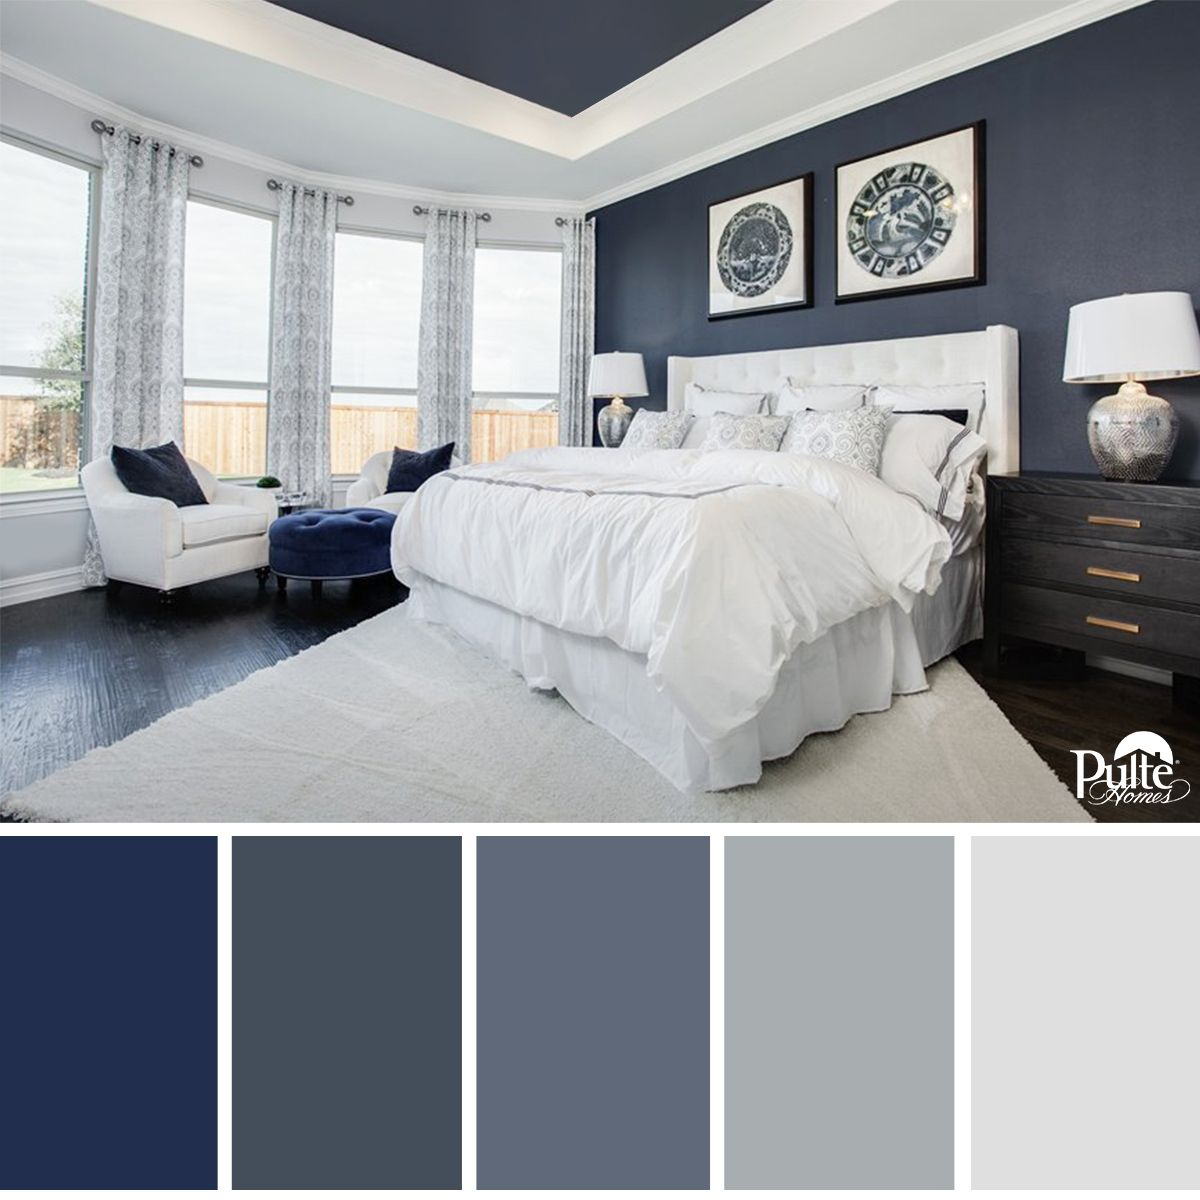 This Bedroom Design Has The Right Idea Rich Blue Color Palette And Decor Create A Dreamy E That Begs You To Kick Back Relax Pulte Homes